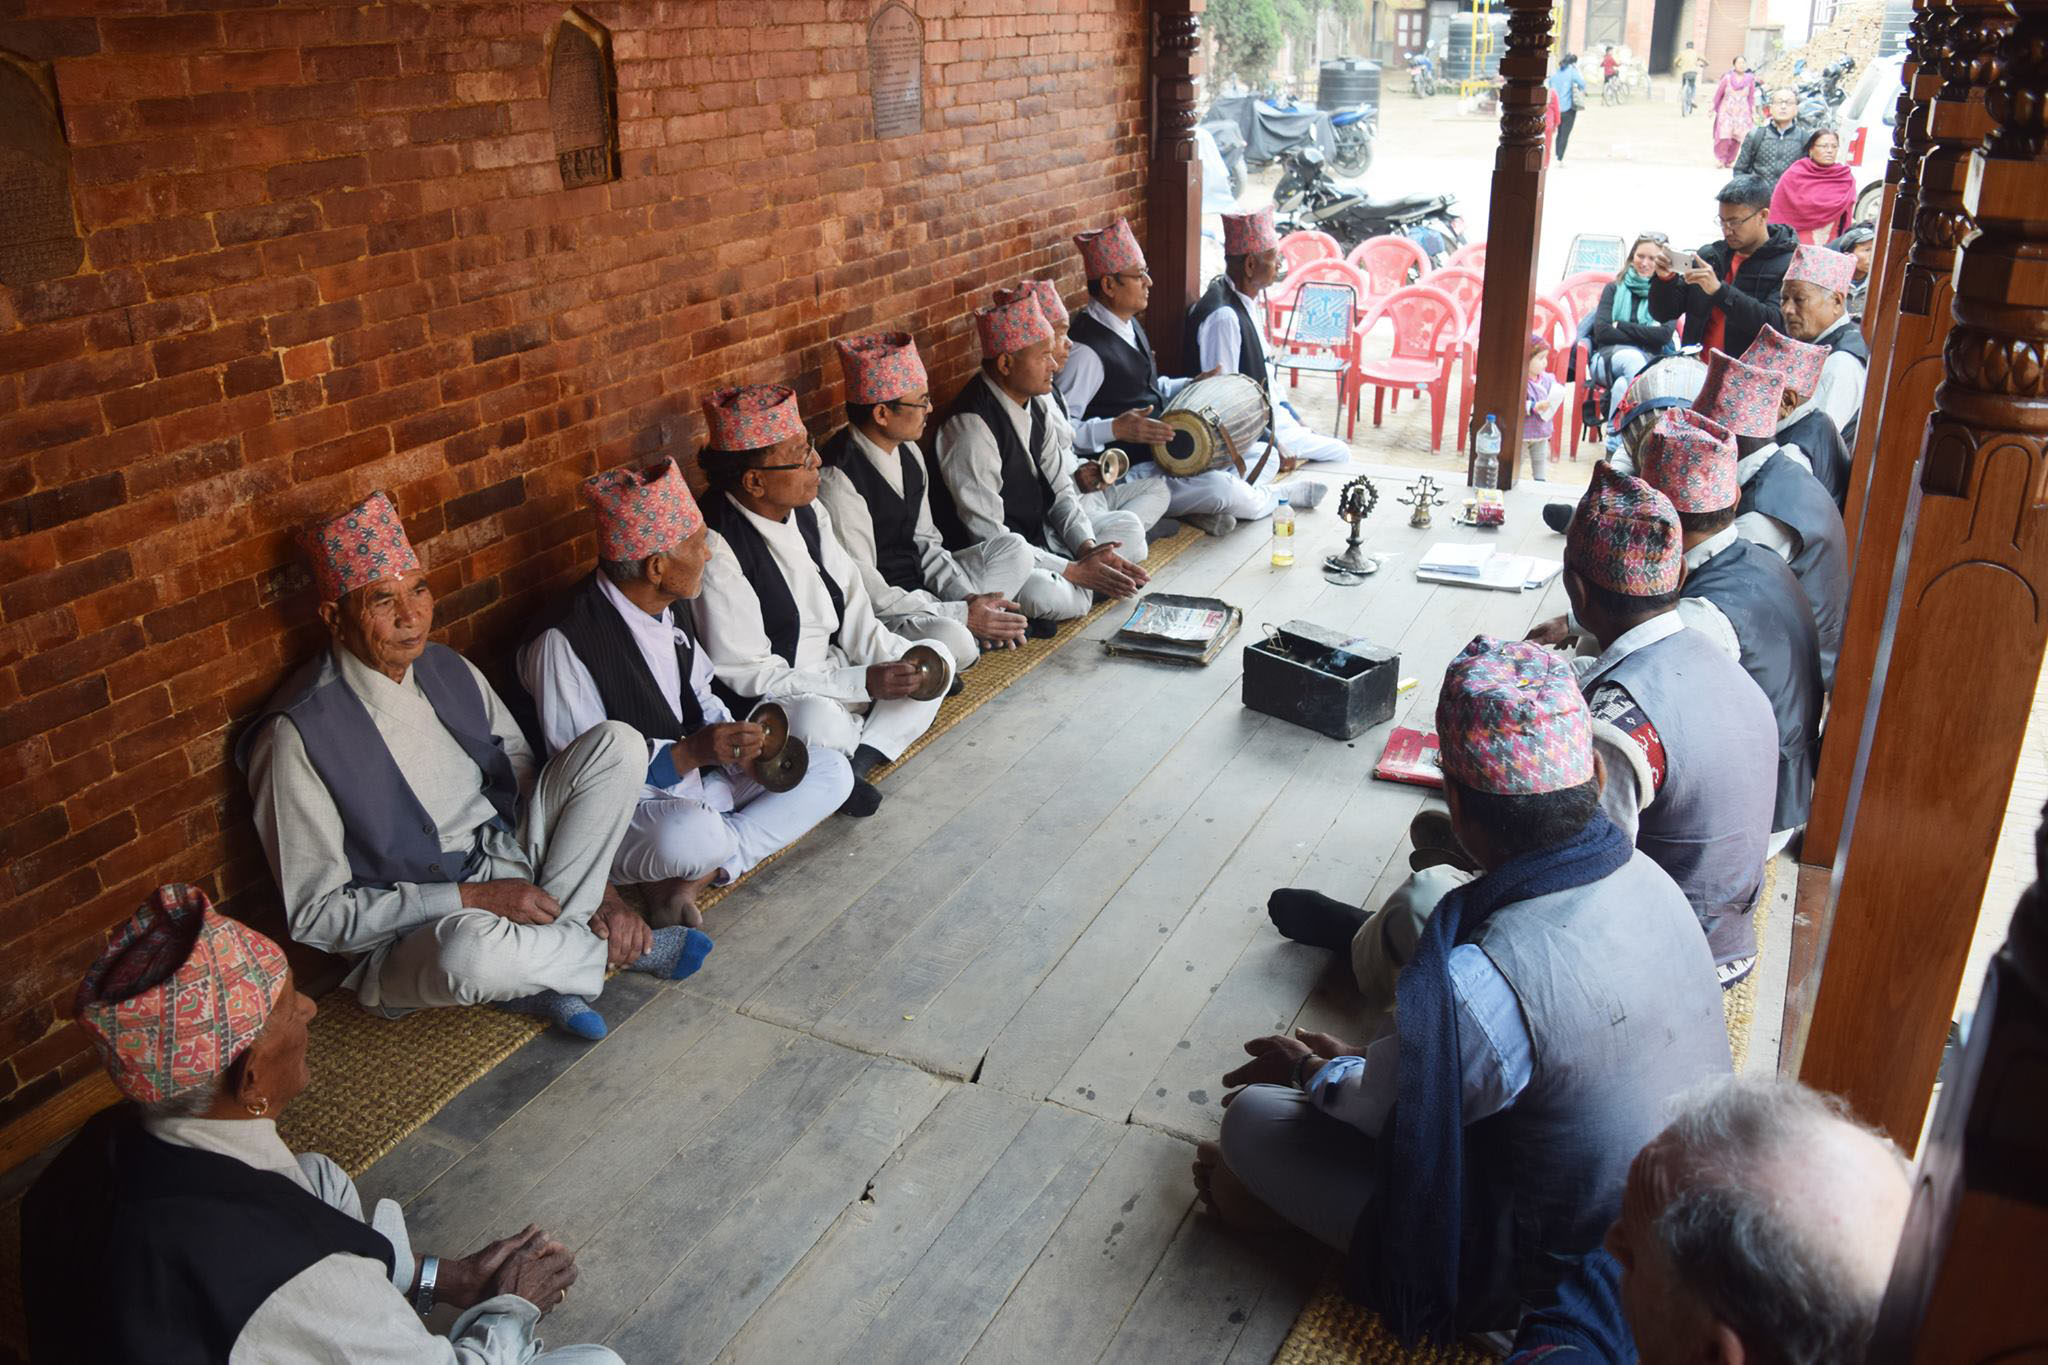 Locals sing hymns in the recently reconstructed pati (inn), Lunchhen Nani Phalcha, in Chabahal, Tangal of Patan on Thursday, March 23, 2017. The pati was destroyed by the 2015 Gorkha Earthquake. Photo Courtesy: Padma Sundar Maharjan